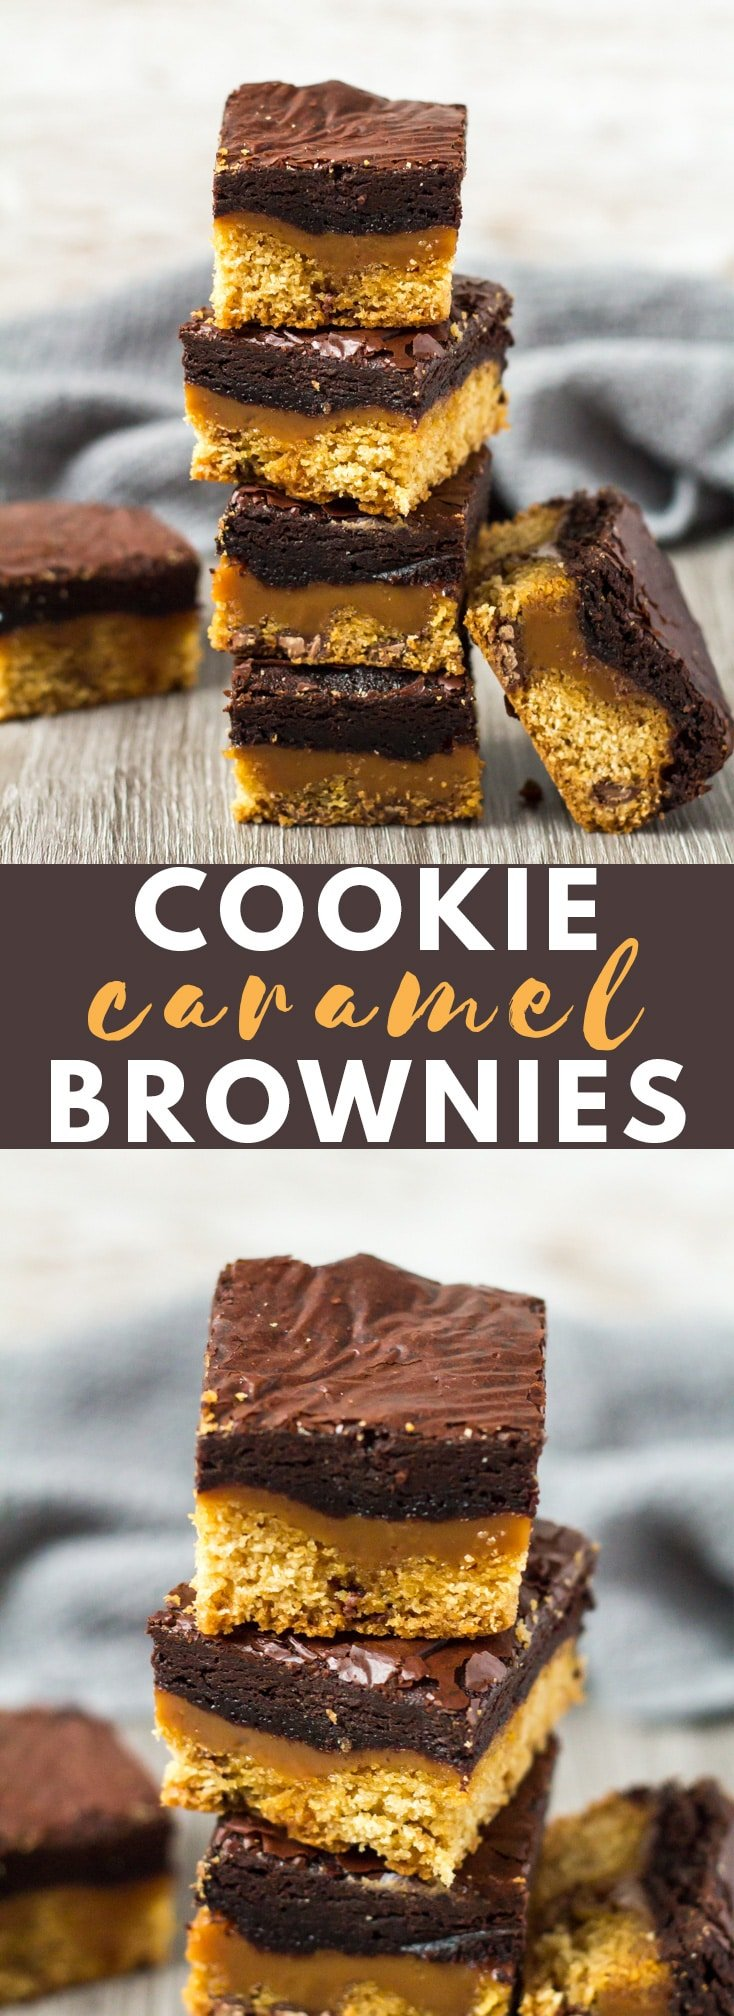 Chocolate Chip Cookie Caramel Brownies - A deliciously thick and chewy chocolate chip cookie layer that is topped with gooey caramel, and finished off with a layer of fudgy brownie!